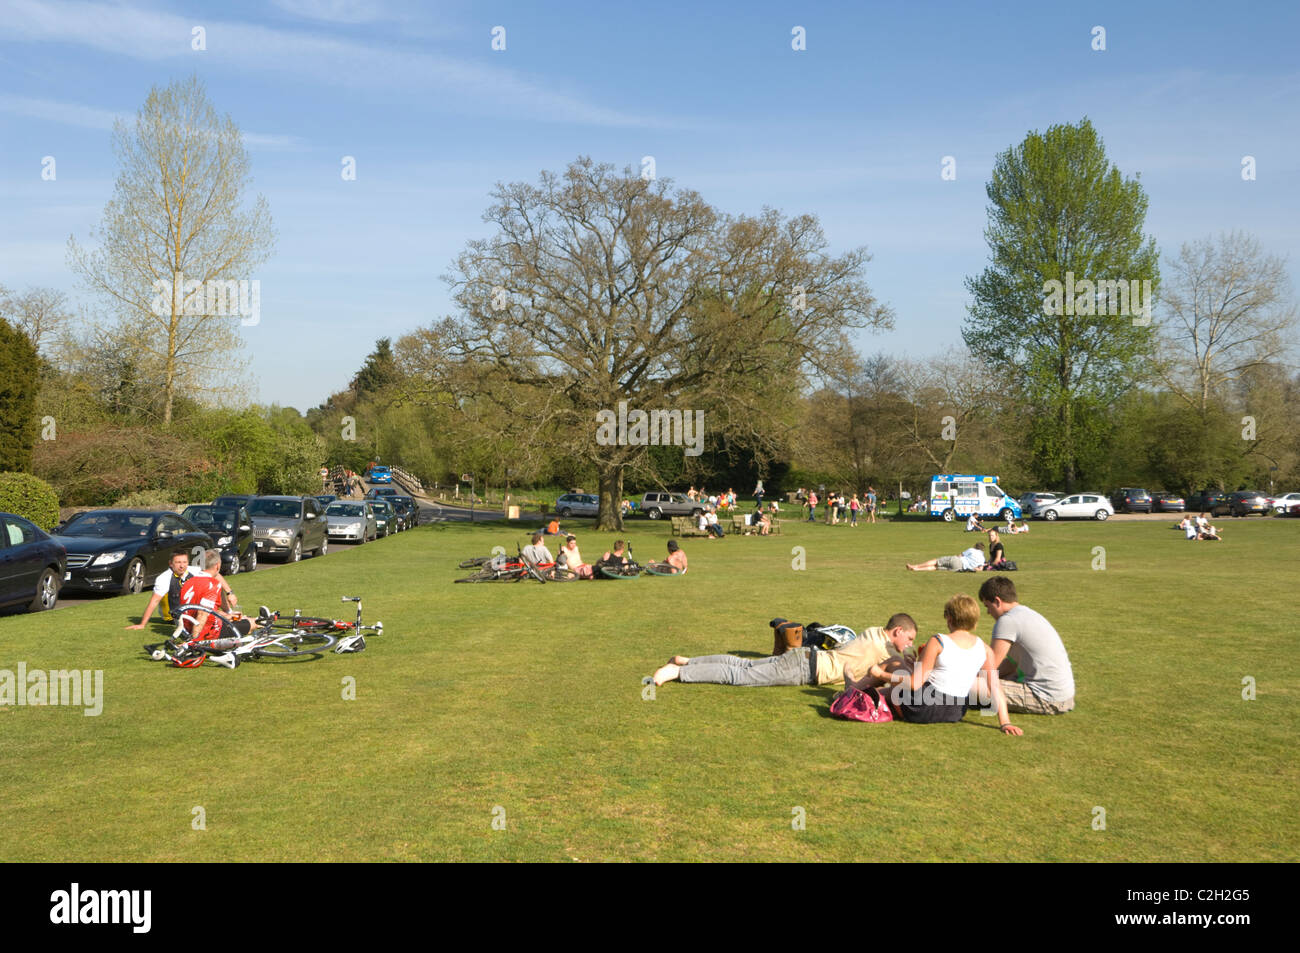 Tilford Green near Farnham Surrey UK - Stock Image